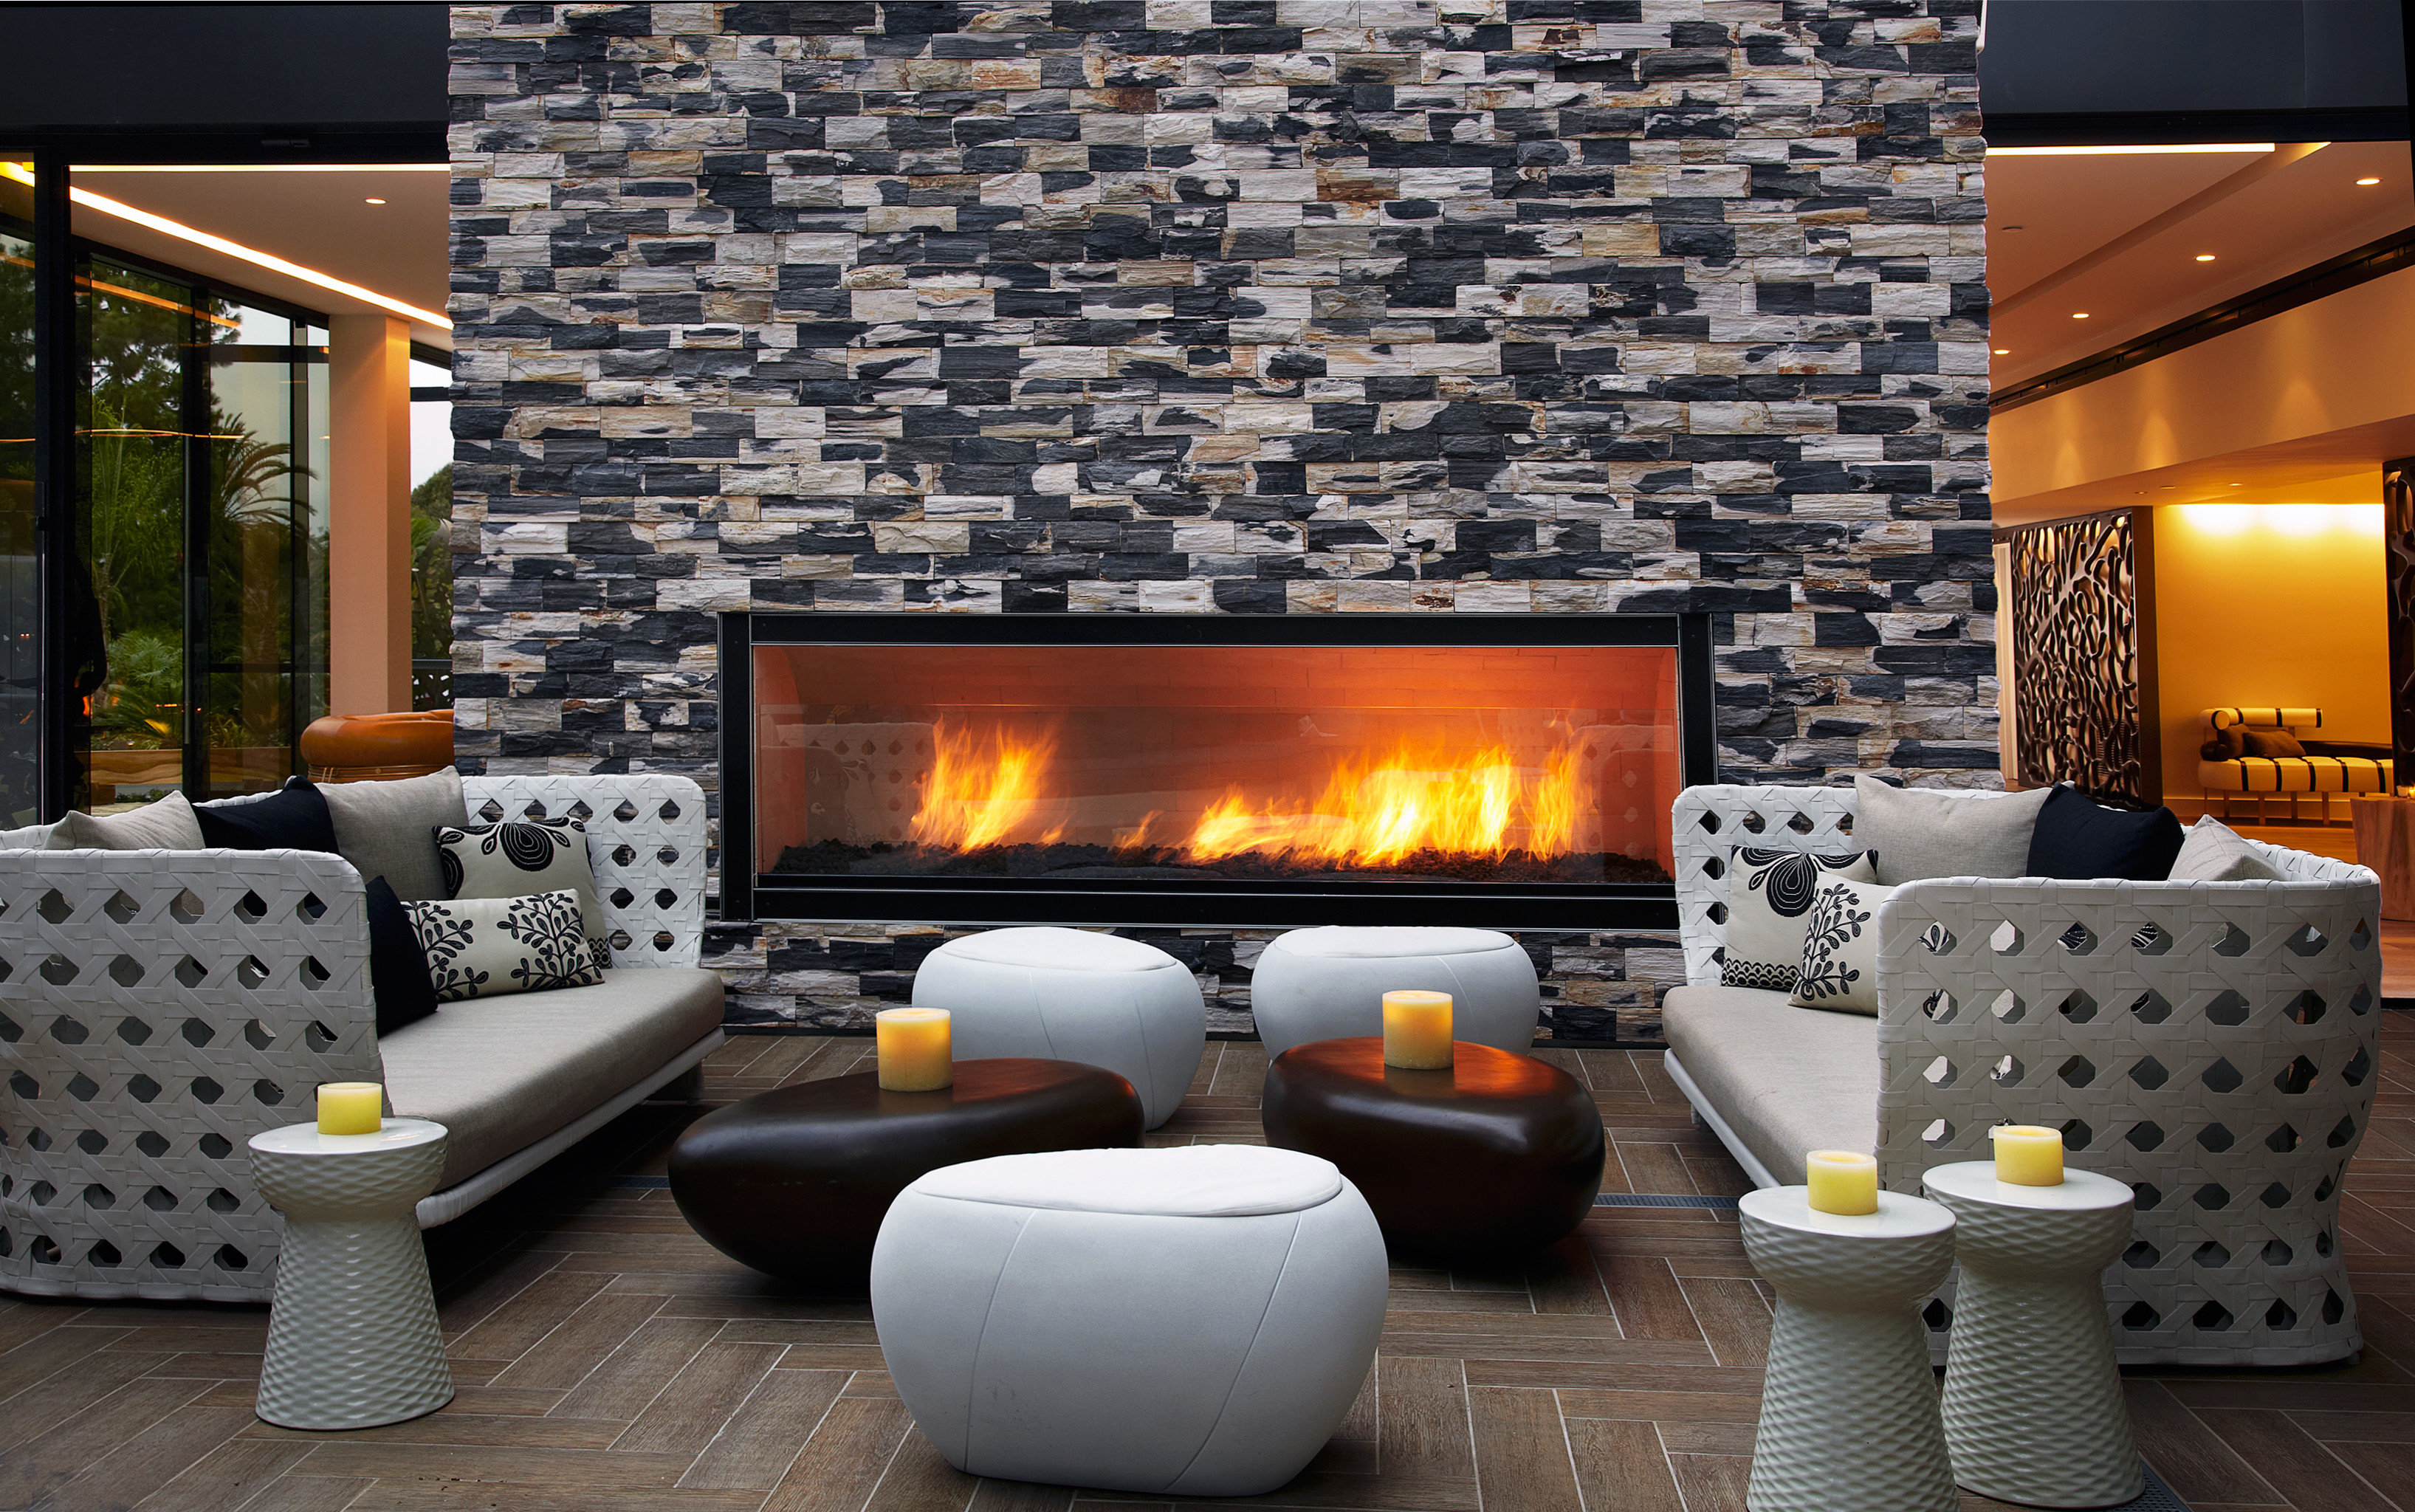 Fireplace Hip Hotels Lobby Lounge hearth living room wood burning stove home cottage stone